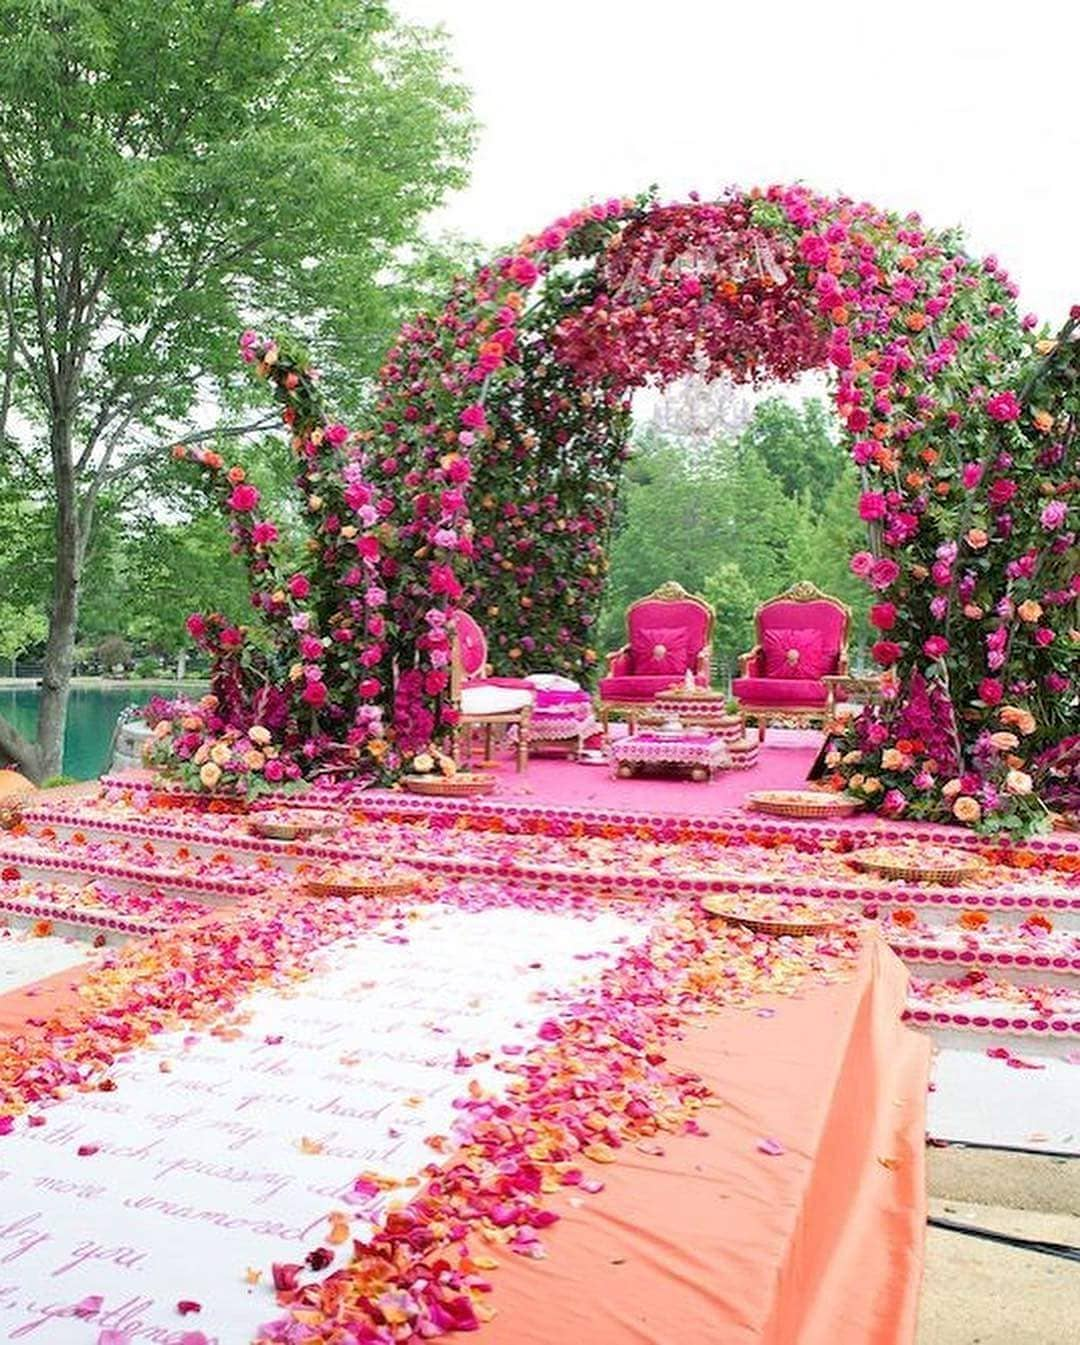 Wedding mandap decoration with pink flowers and wedding vows printed on the Aisle plus with pink and golden colour wedding mandap chairs